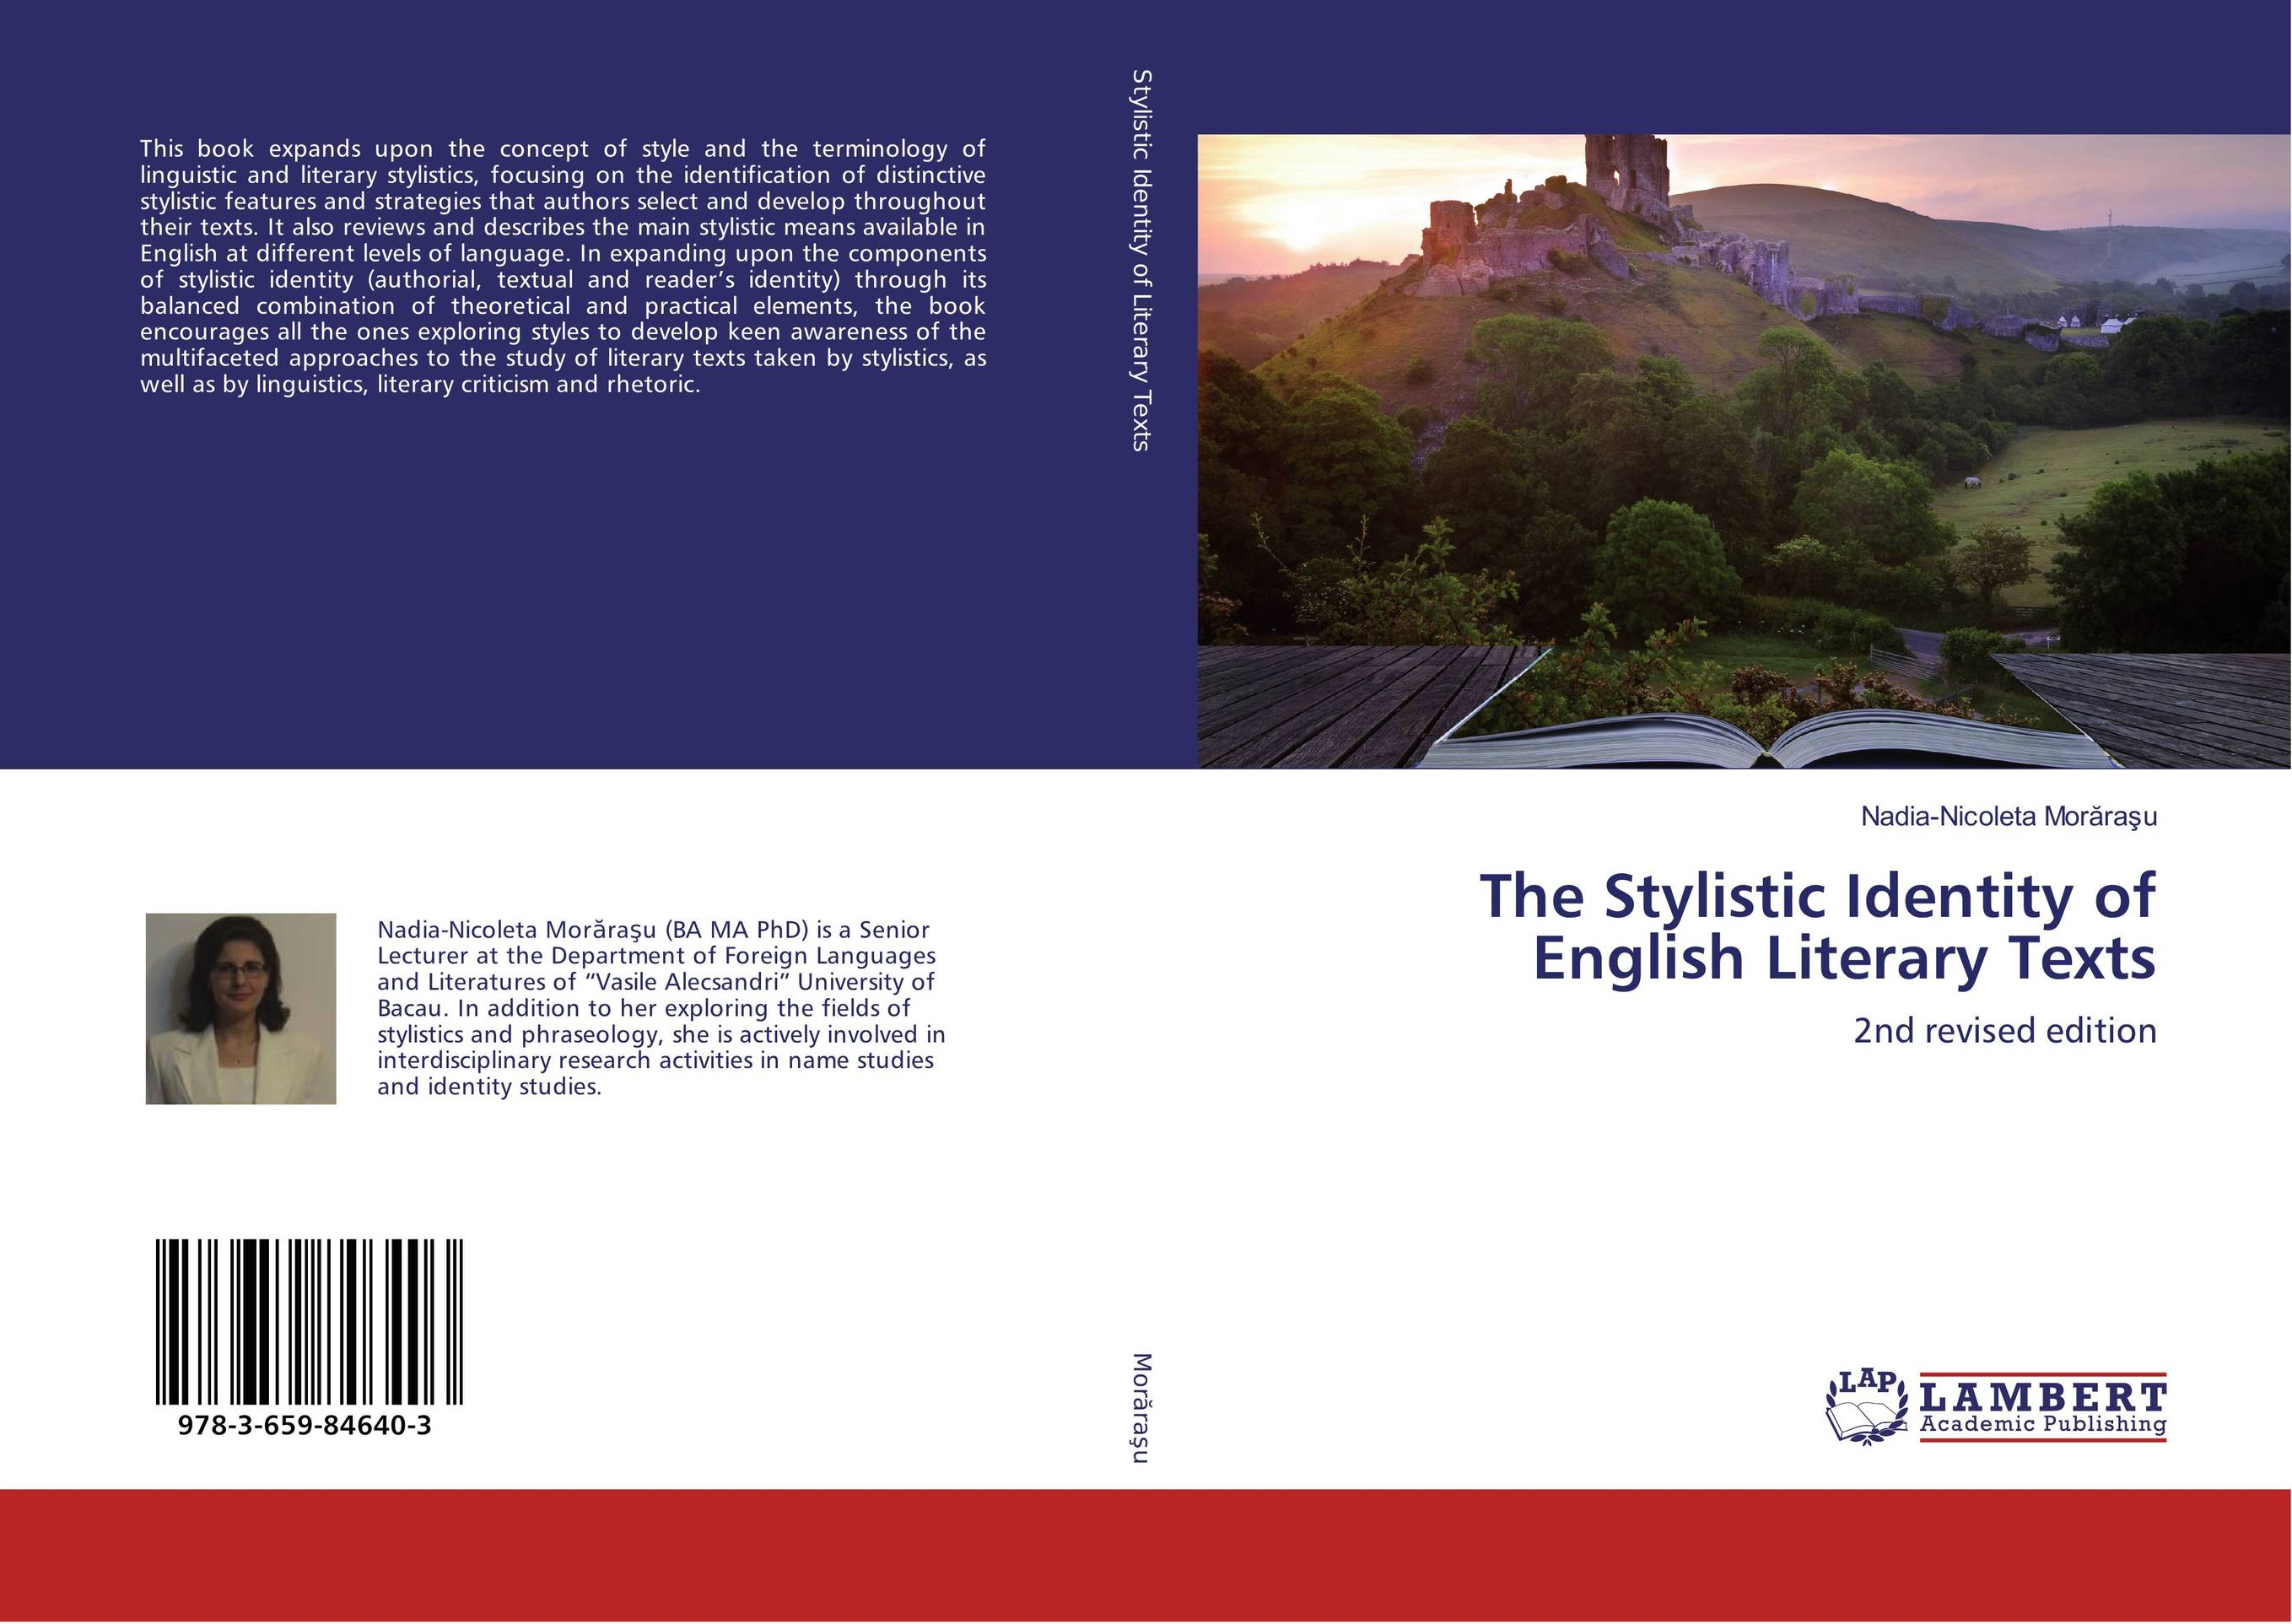 The Stylistic Identity of English Literary Texts the stylistic identity of english literary texts